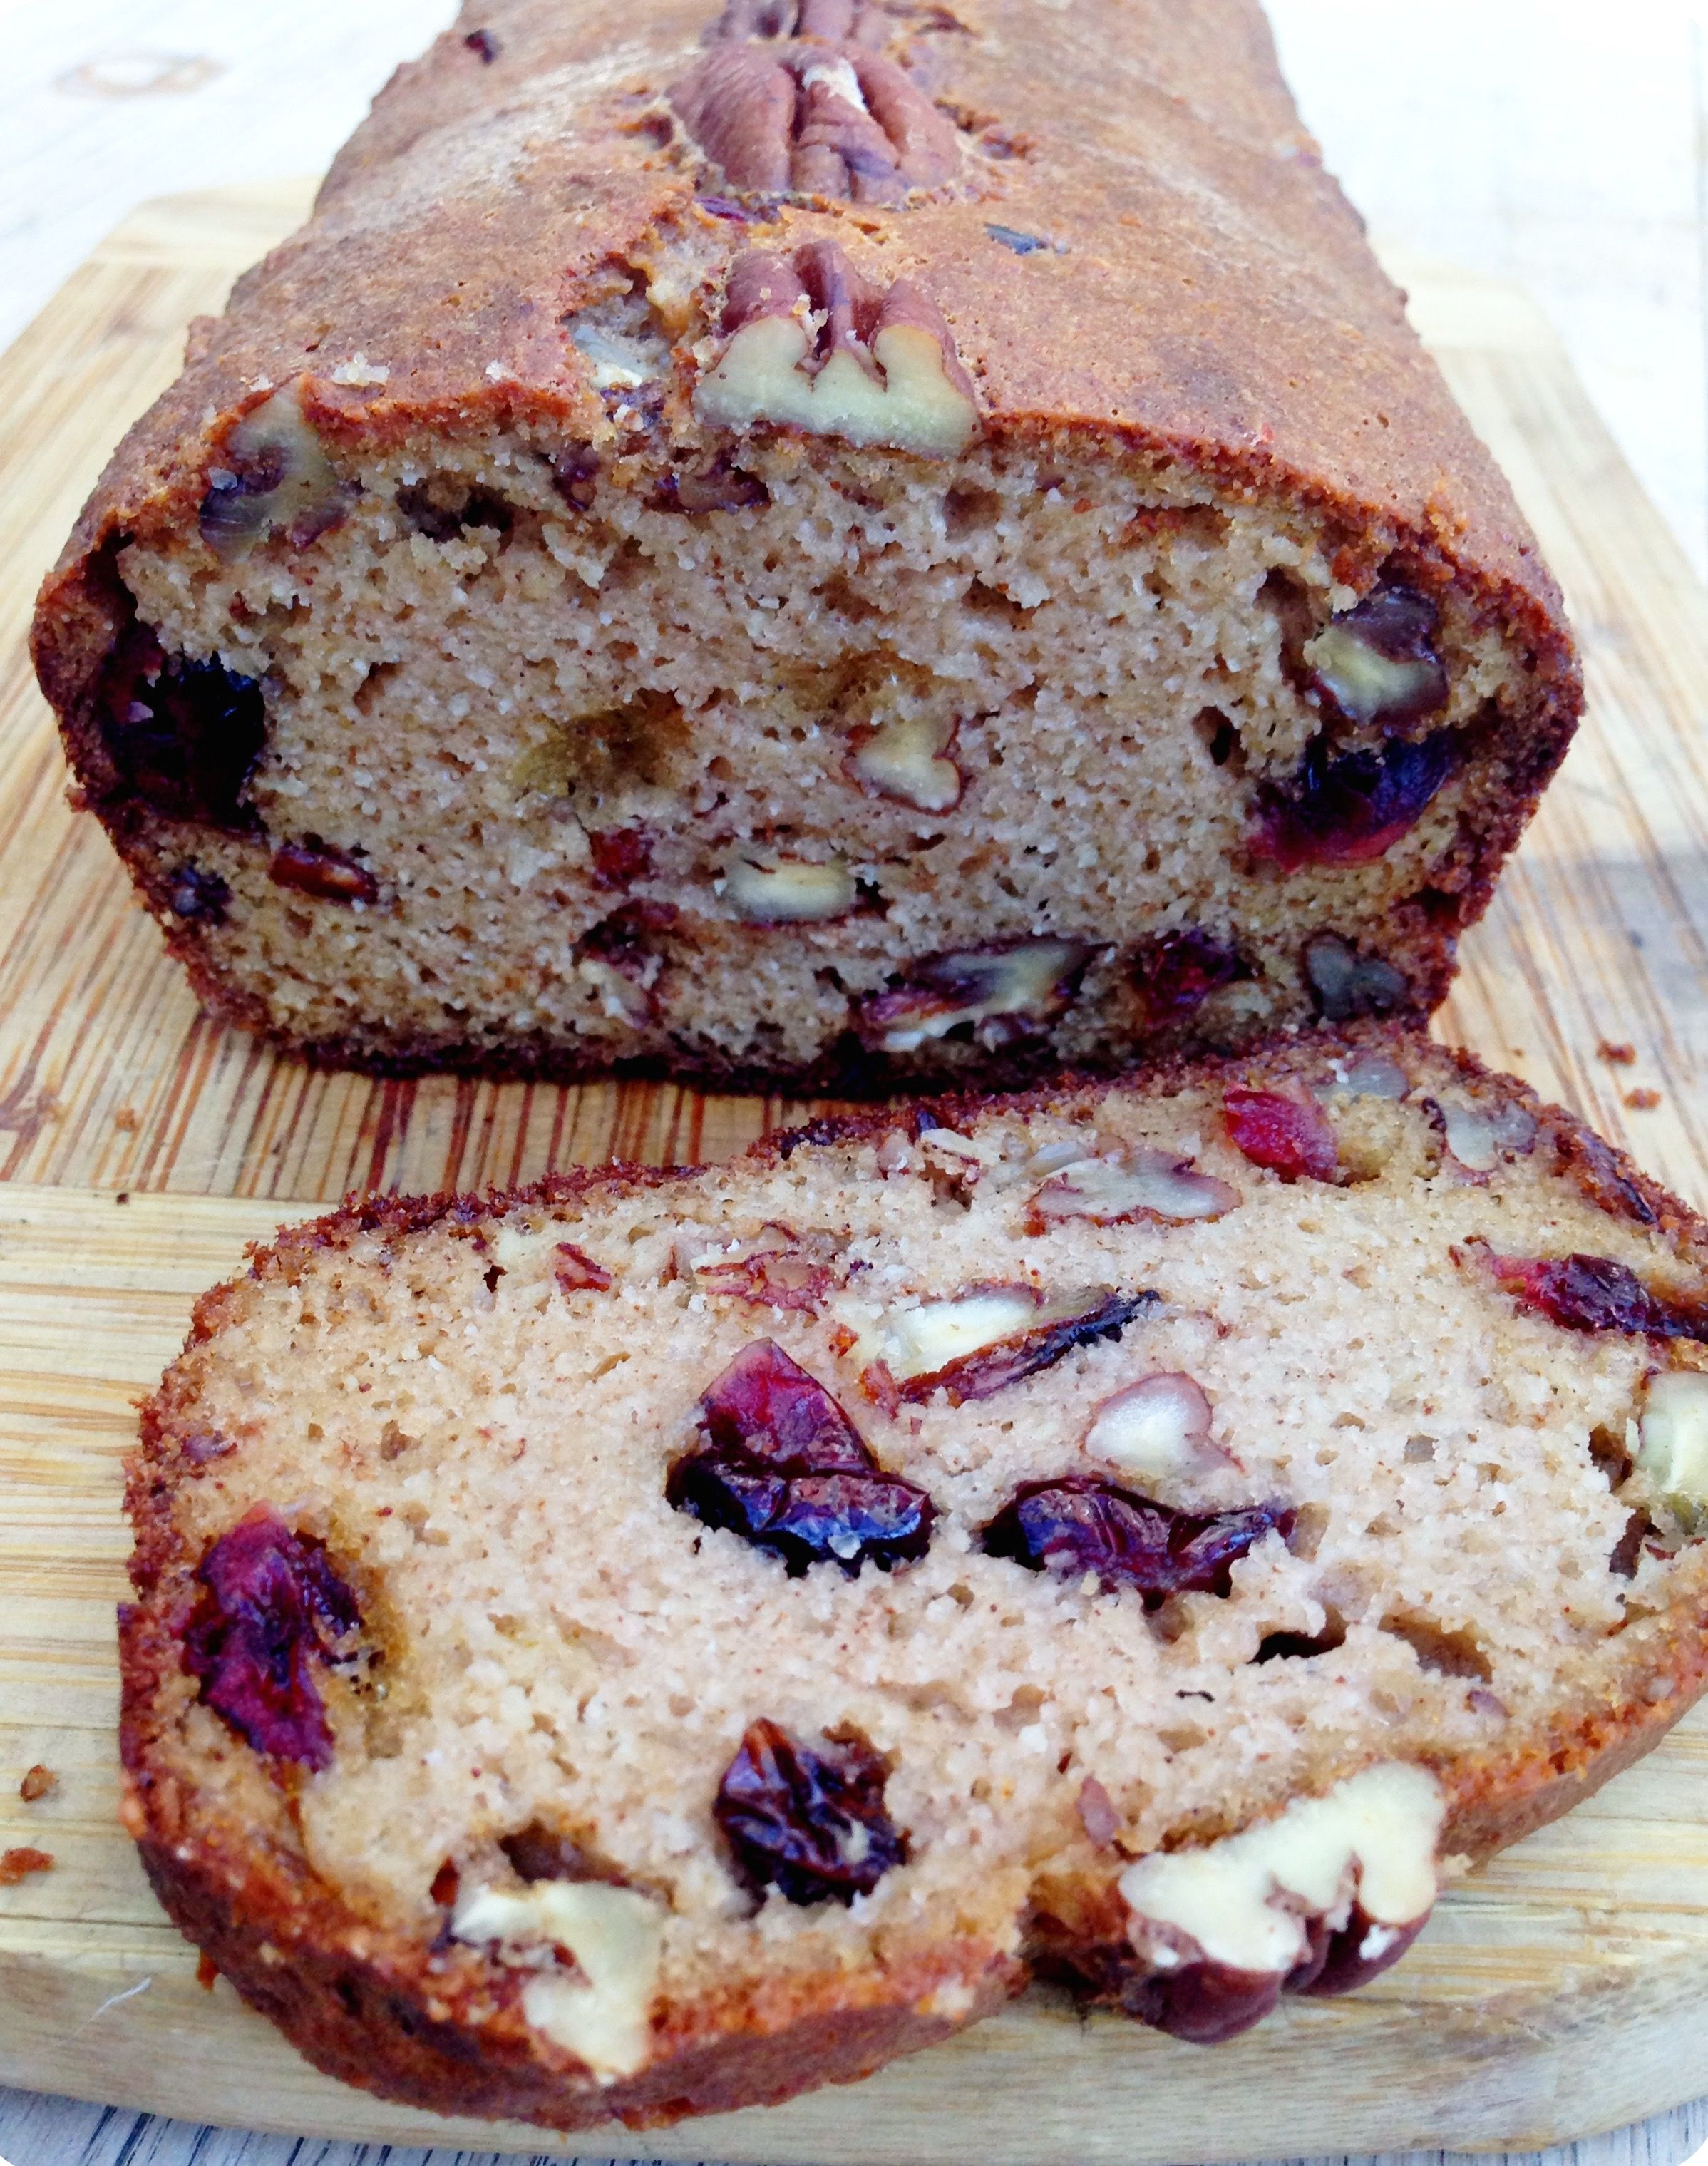 Cranberry Pecan Bread: Gluten free, dairy free and paleo. 5 Eggs 1/4 Cup of Honey/Maple Syrup (60ml) 1/4 Cup of Melted Coconut Oil (60ml) 2 1/2 Cups of Ground Almonds (300g) 1 Teaspoon of Baking Powder 1 Teaspoon of Cinnamon 1/2 Cup of Dried Cranberries (75g) 1/2 Cup of Pecans/Walnuts (75g)